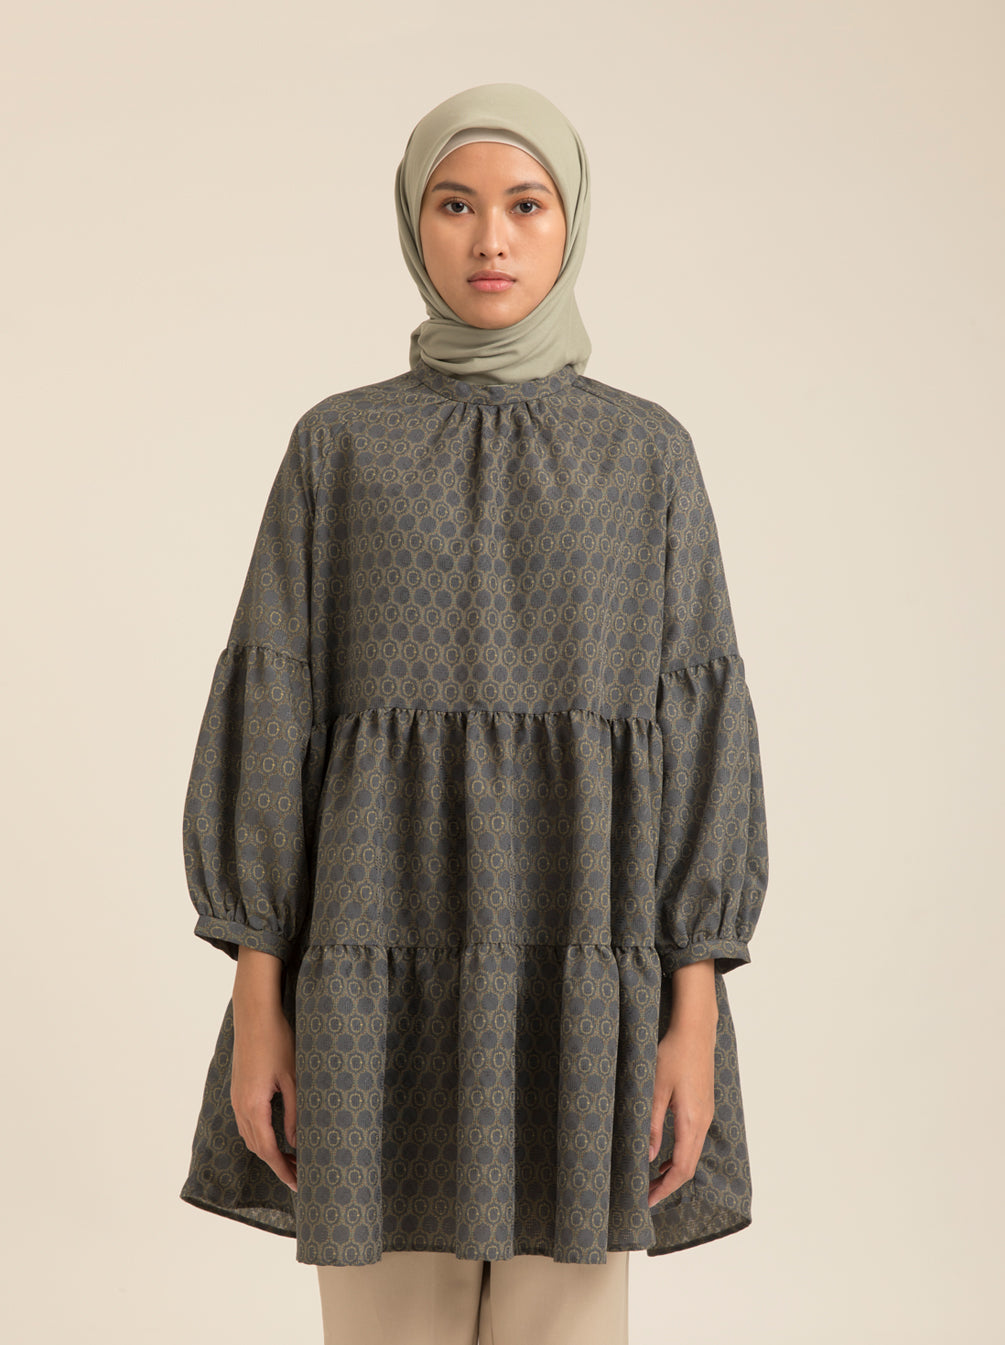 KEIRA TUNIC WAVE